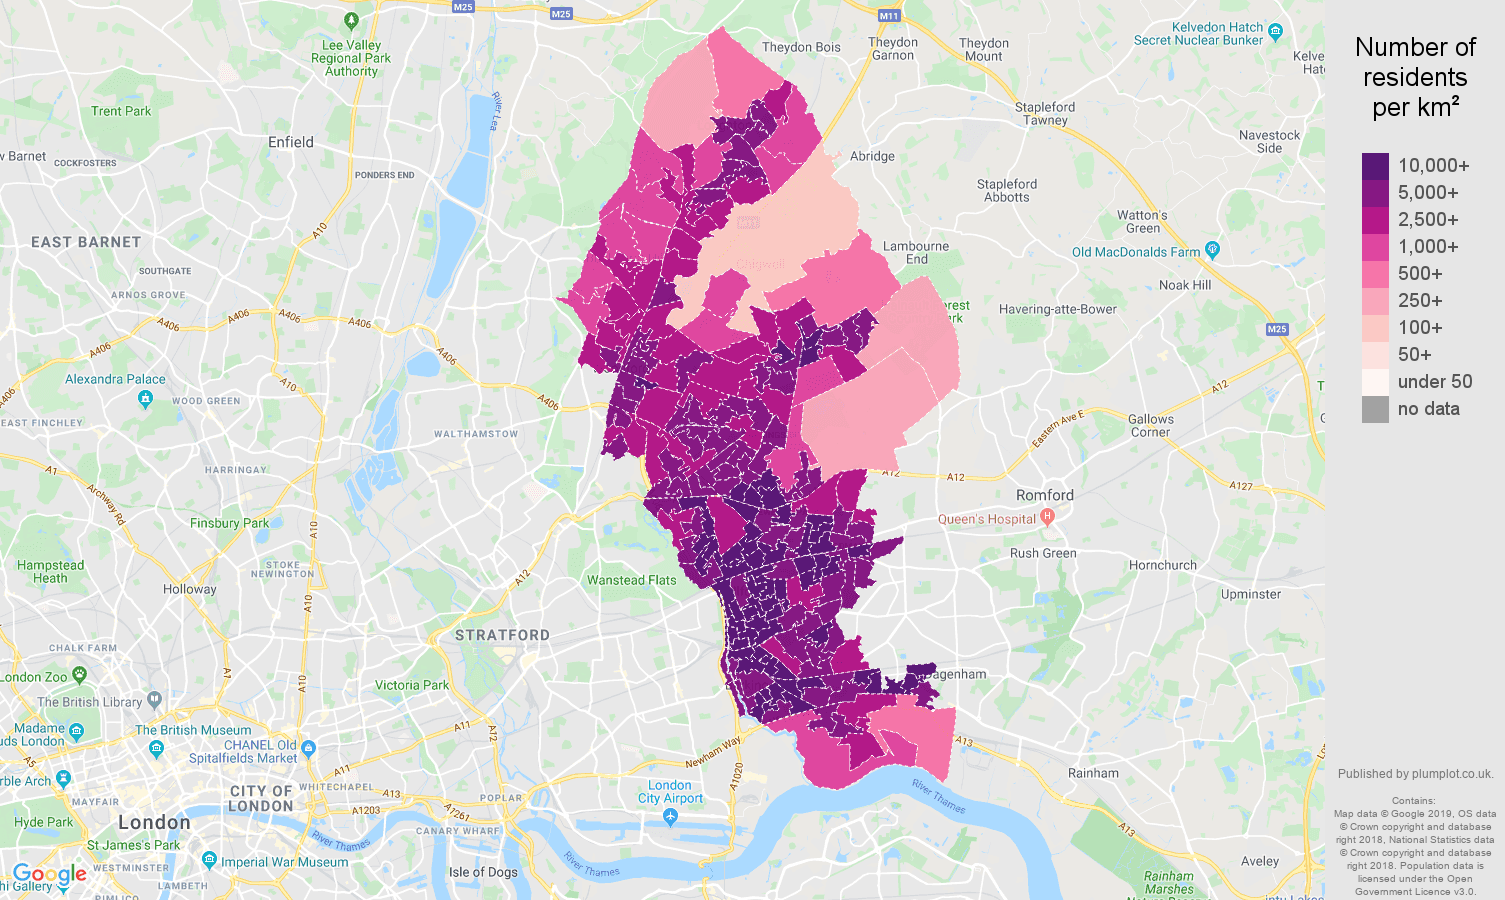 Ilford population density map